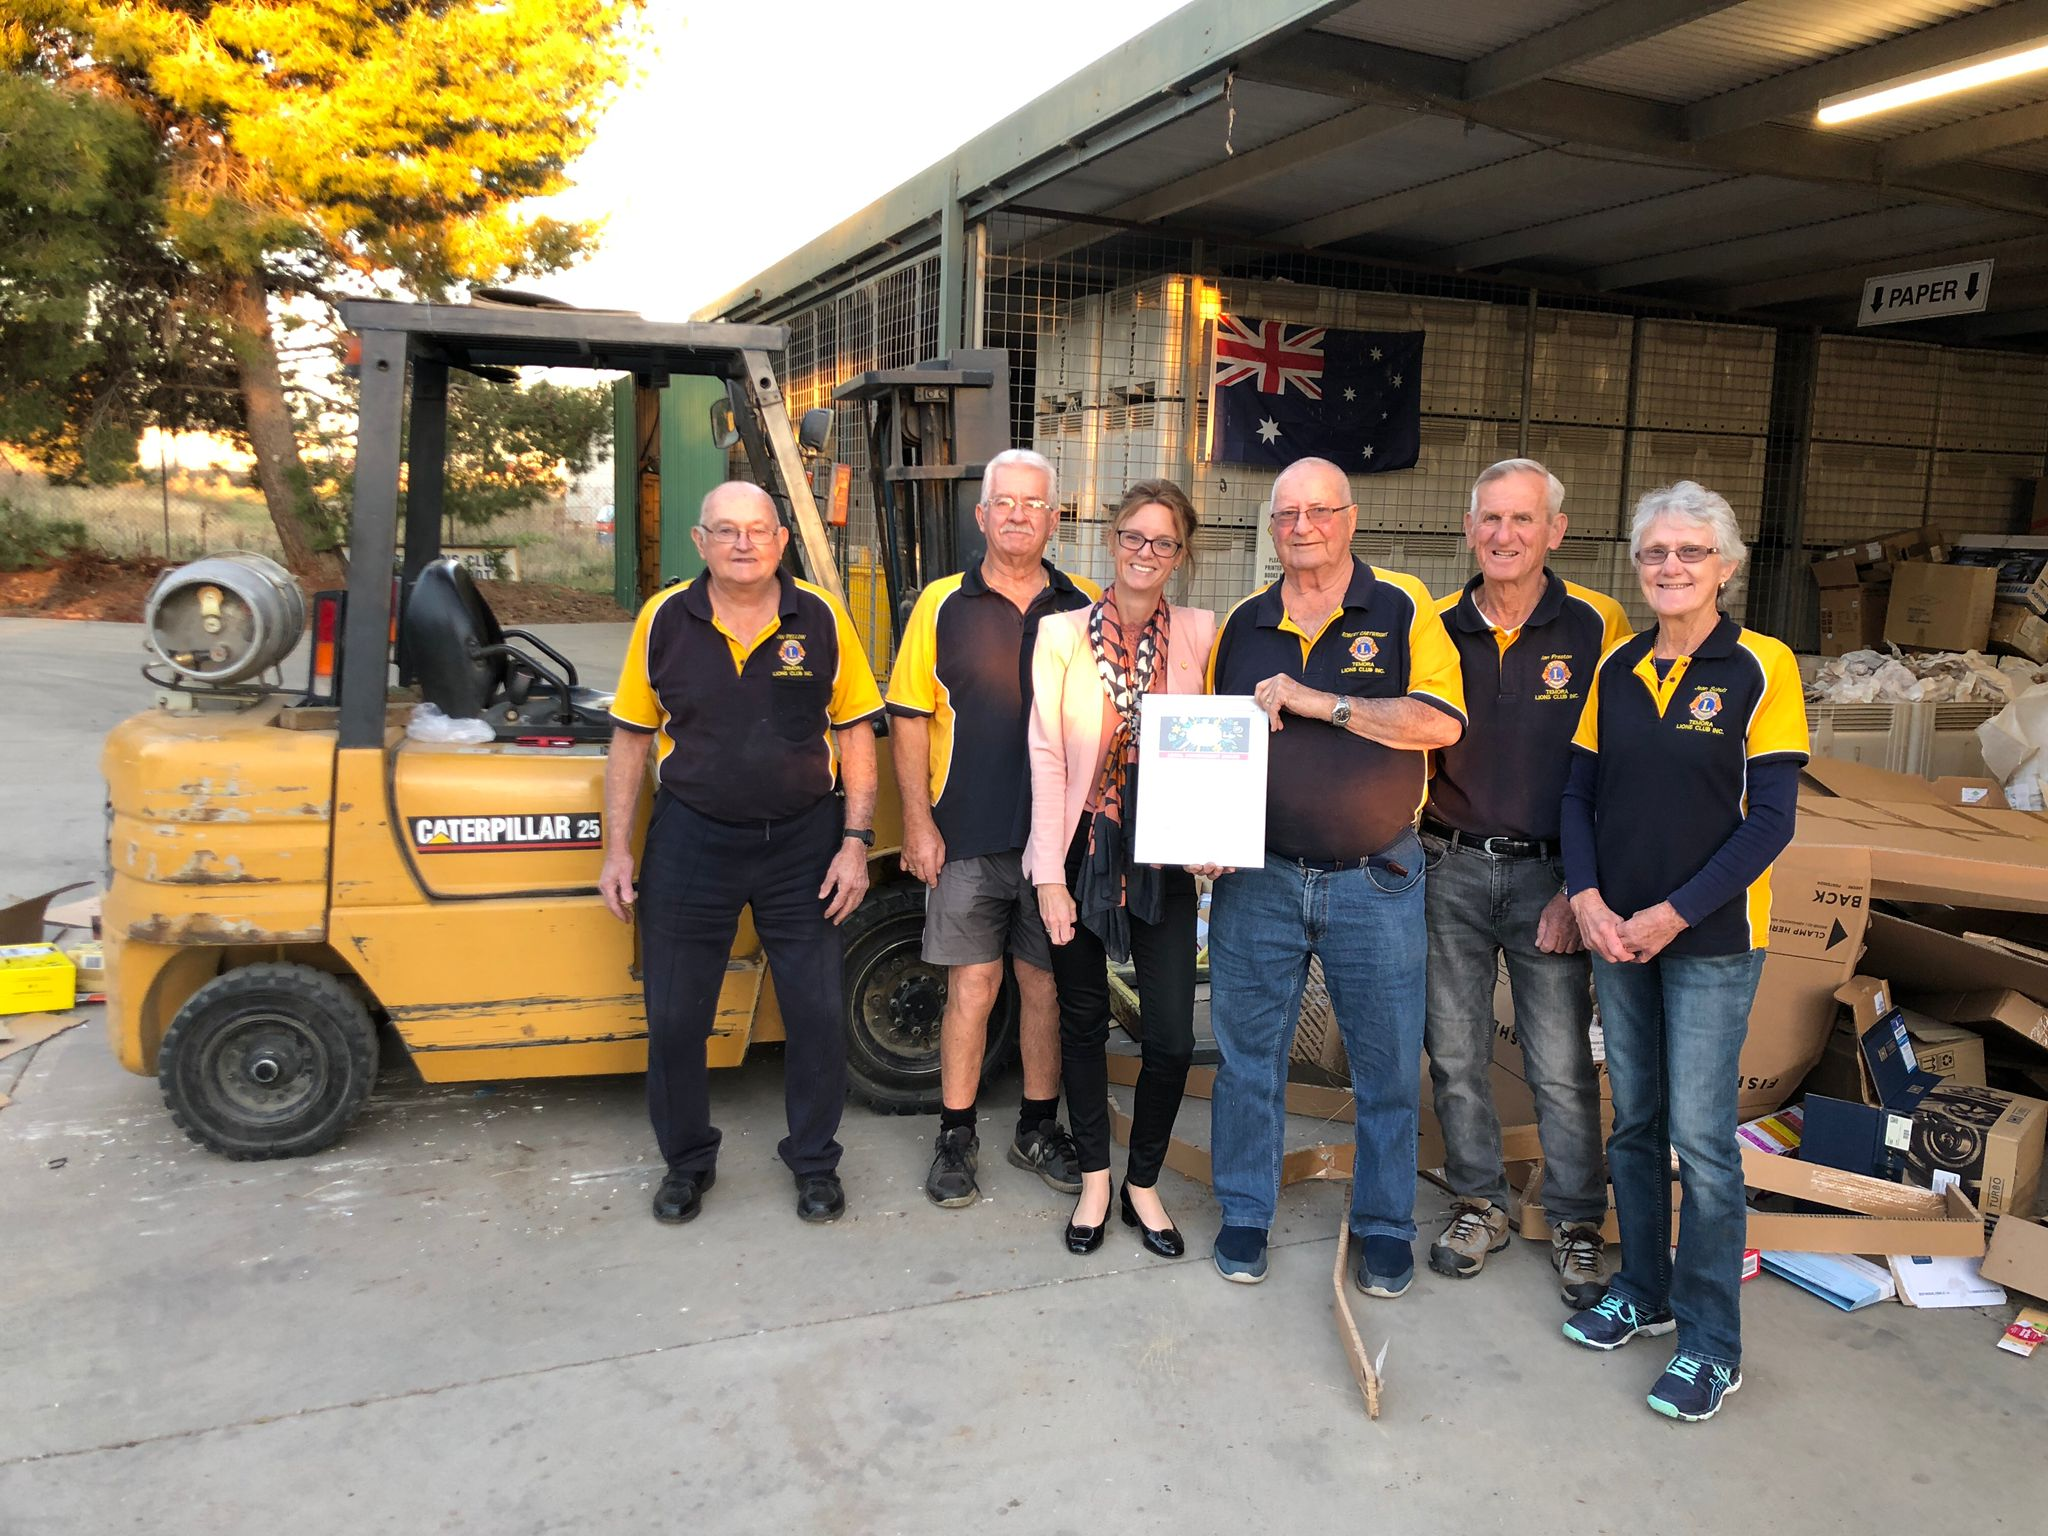 Steph Cooke stands with five Lions members who wear their yellow and navy shirts. All smile at the camera and stand in front of cardboard recycling equipment.